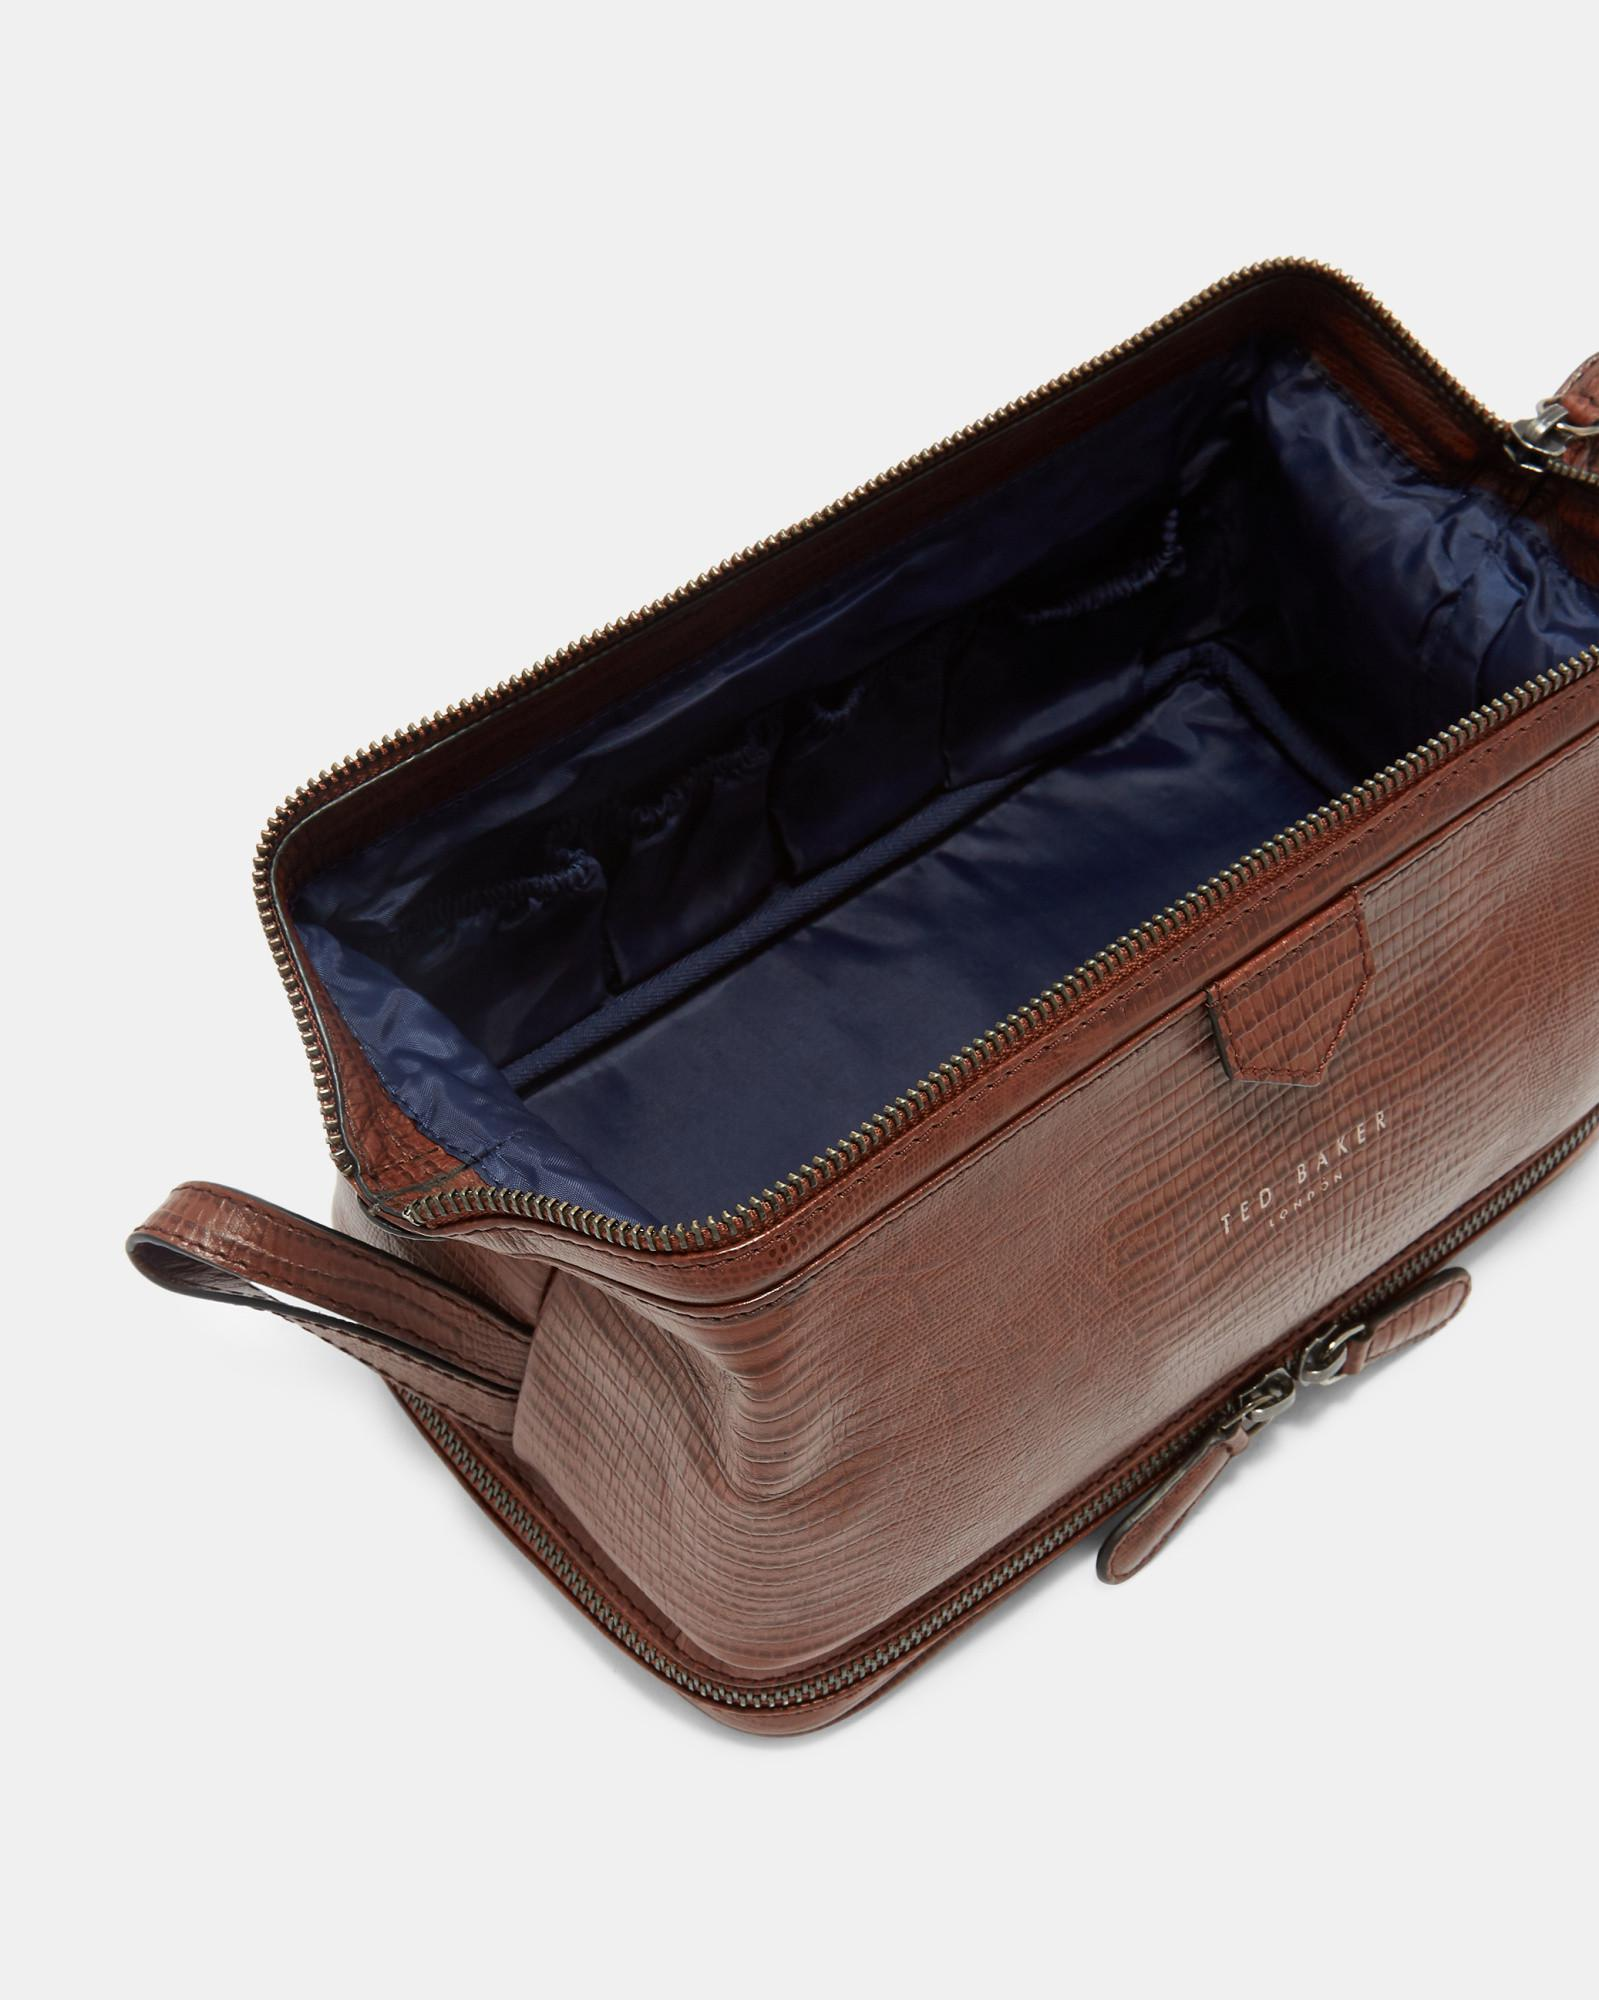 b25007ac7 Lyst - Ted Baker Croc Effect Leather Wash Bag in Brown for Men